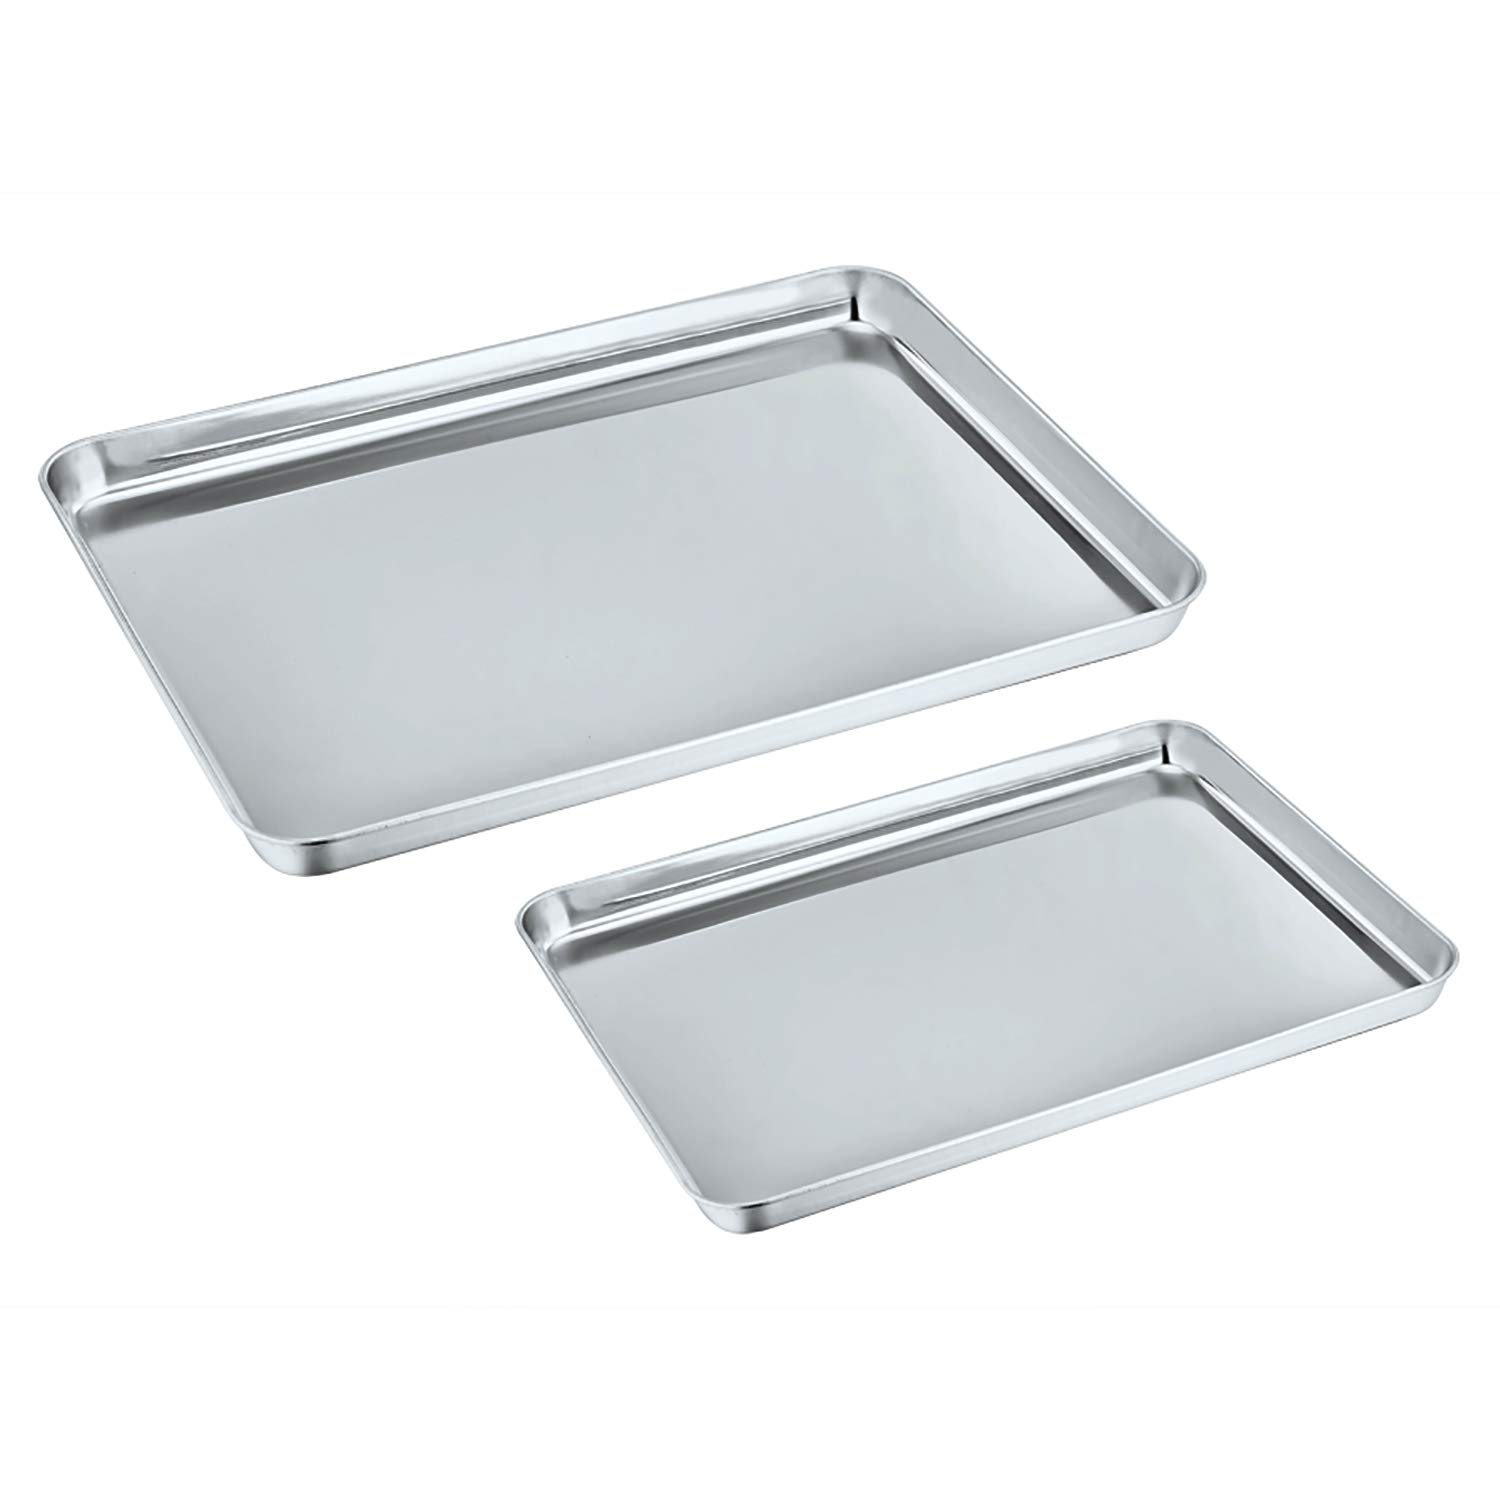 Baking Sheet Set of 2, P&P Chef Stainless Steel Baking Pan Cookie Sheet Professional, Non Toxic & Healthy, Rust Free & Dishwasher Safe, Mirror Finish & Easy Clean